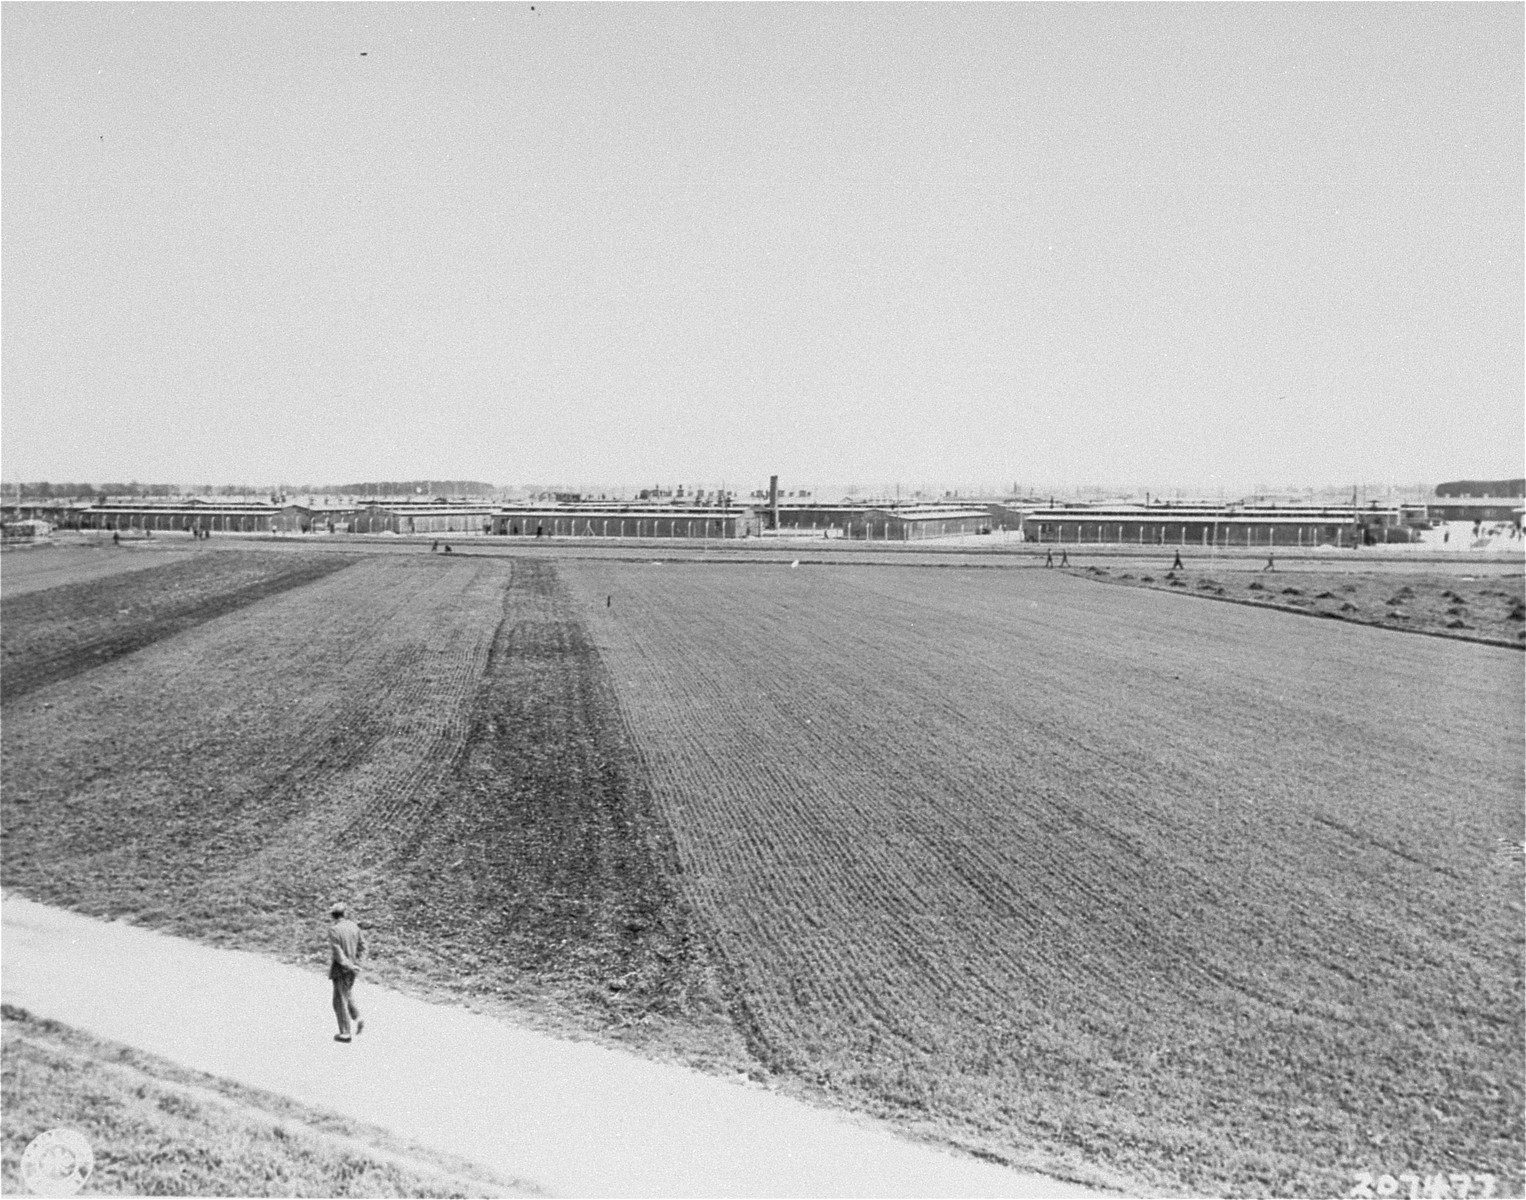 The Dachau concentration camp after liberation.